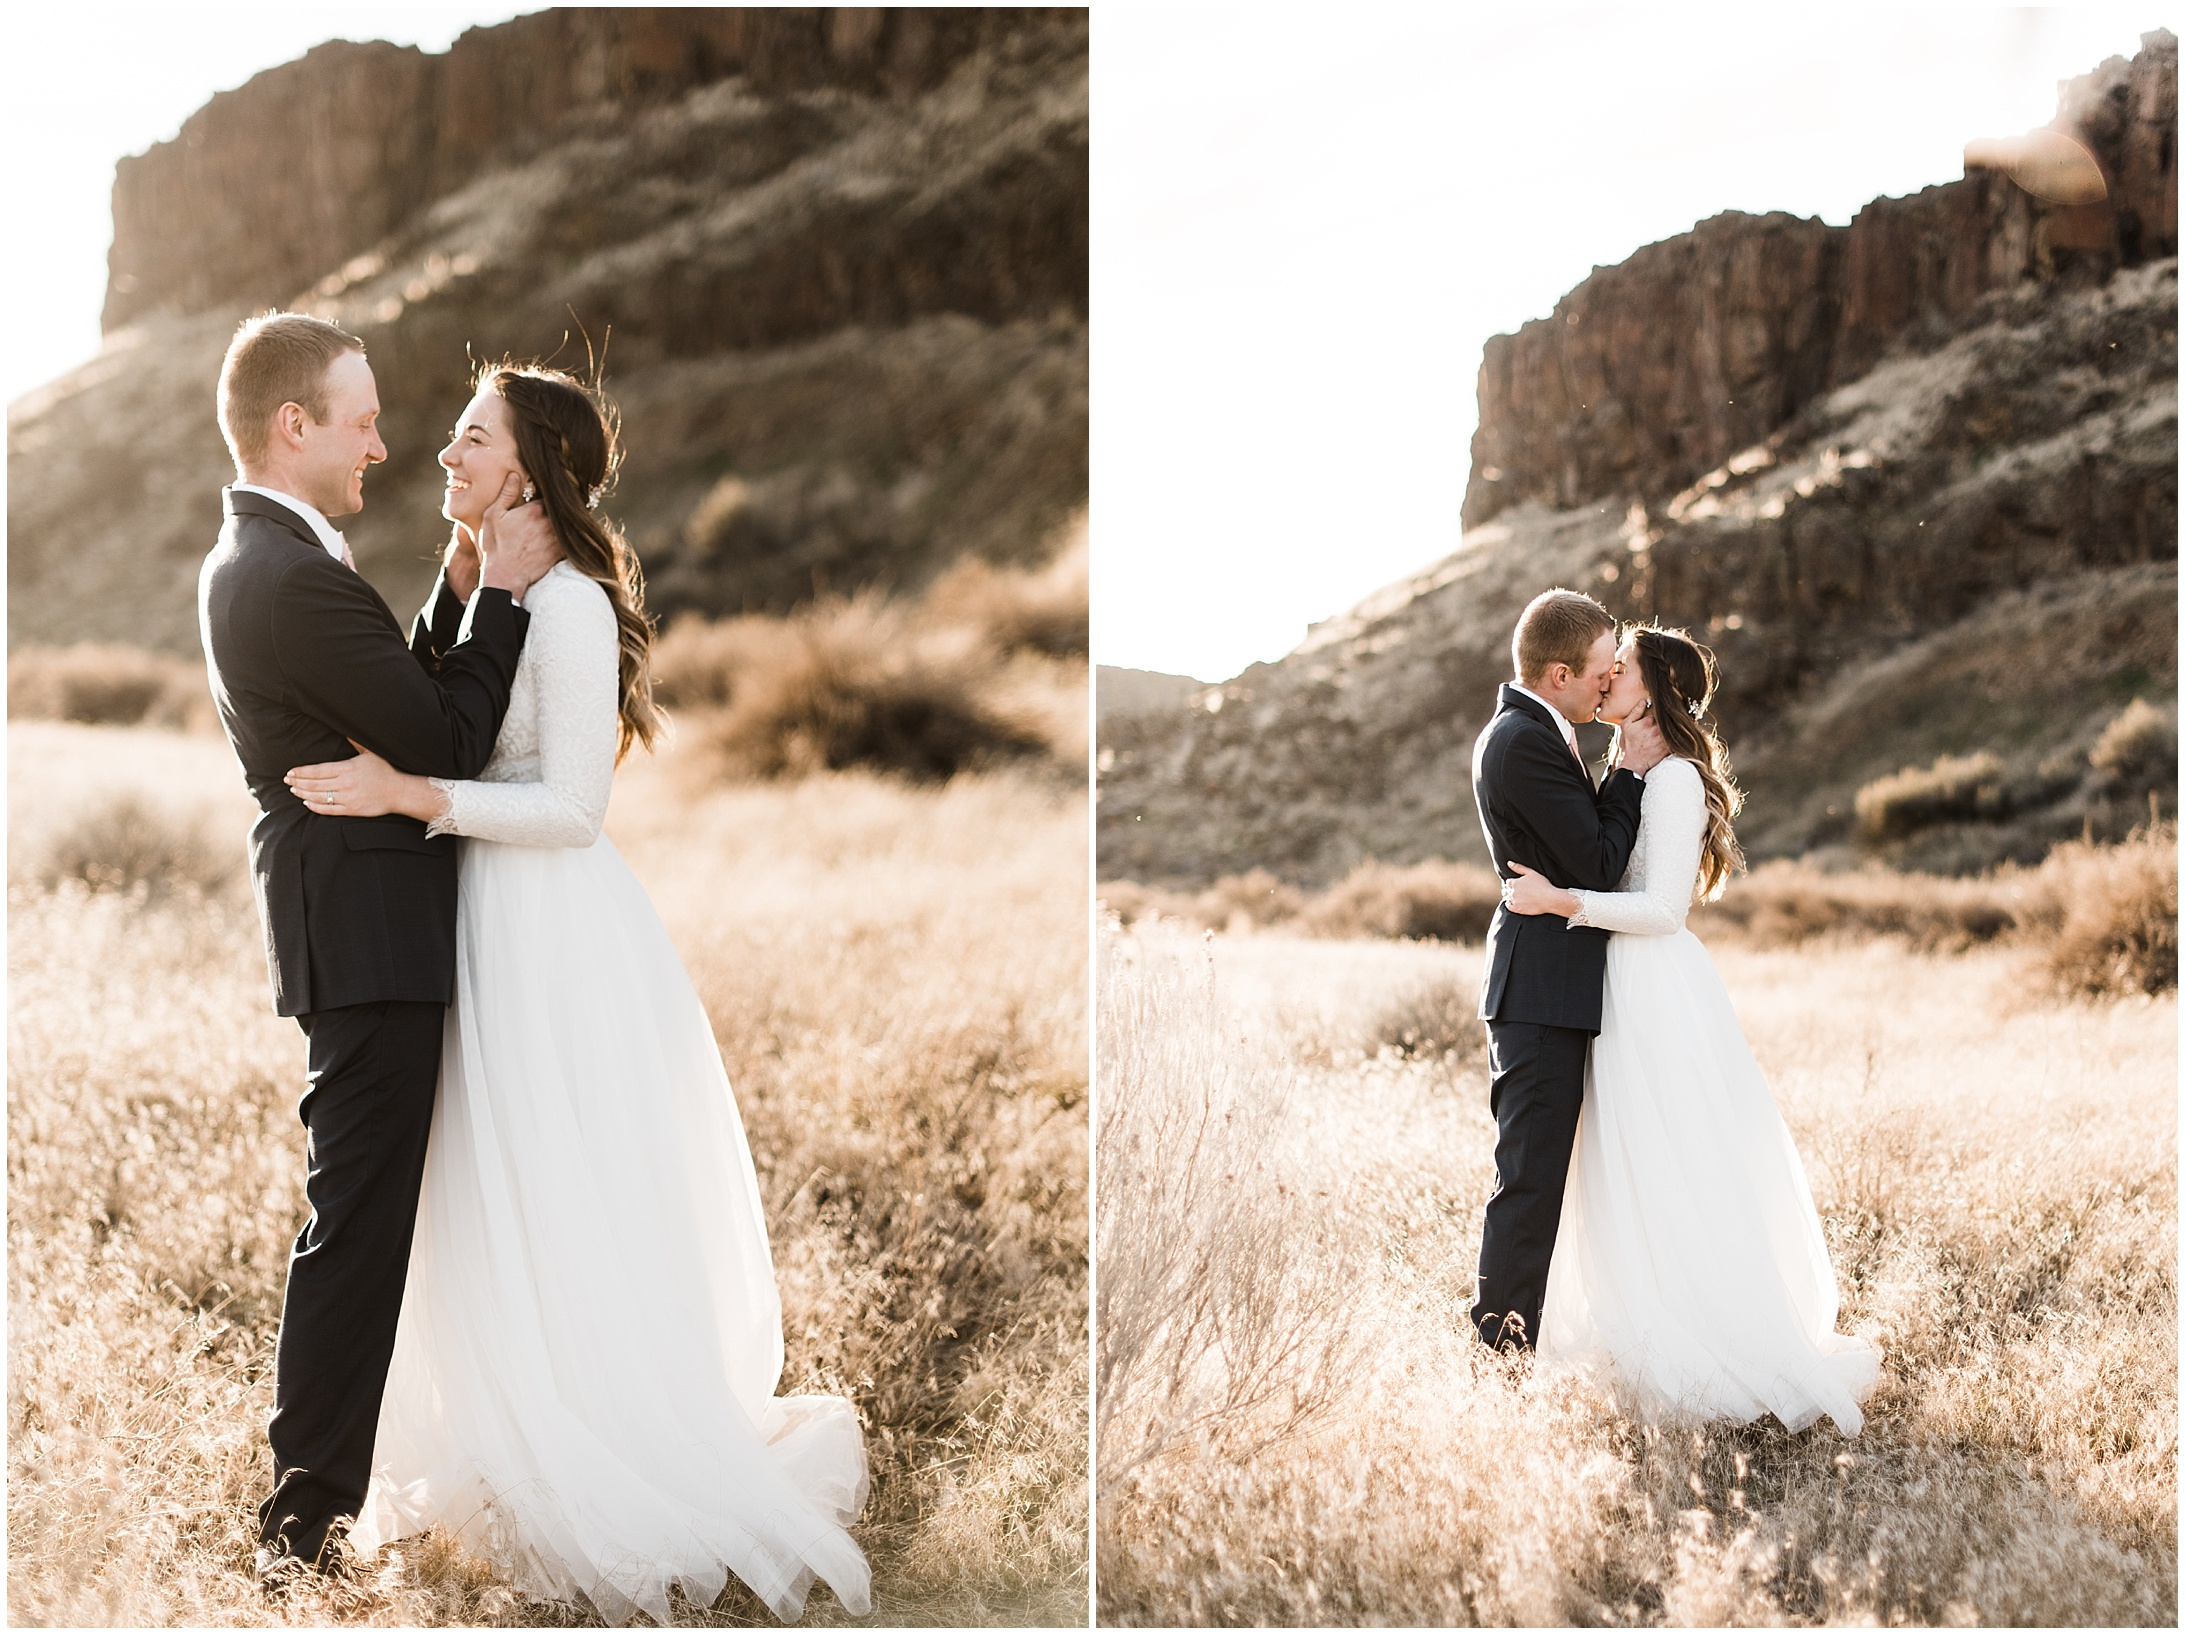 Diptych of a bride and groom standing in a desert canyon by Forthright Photo